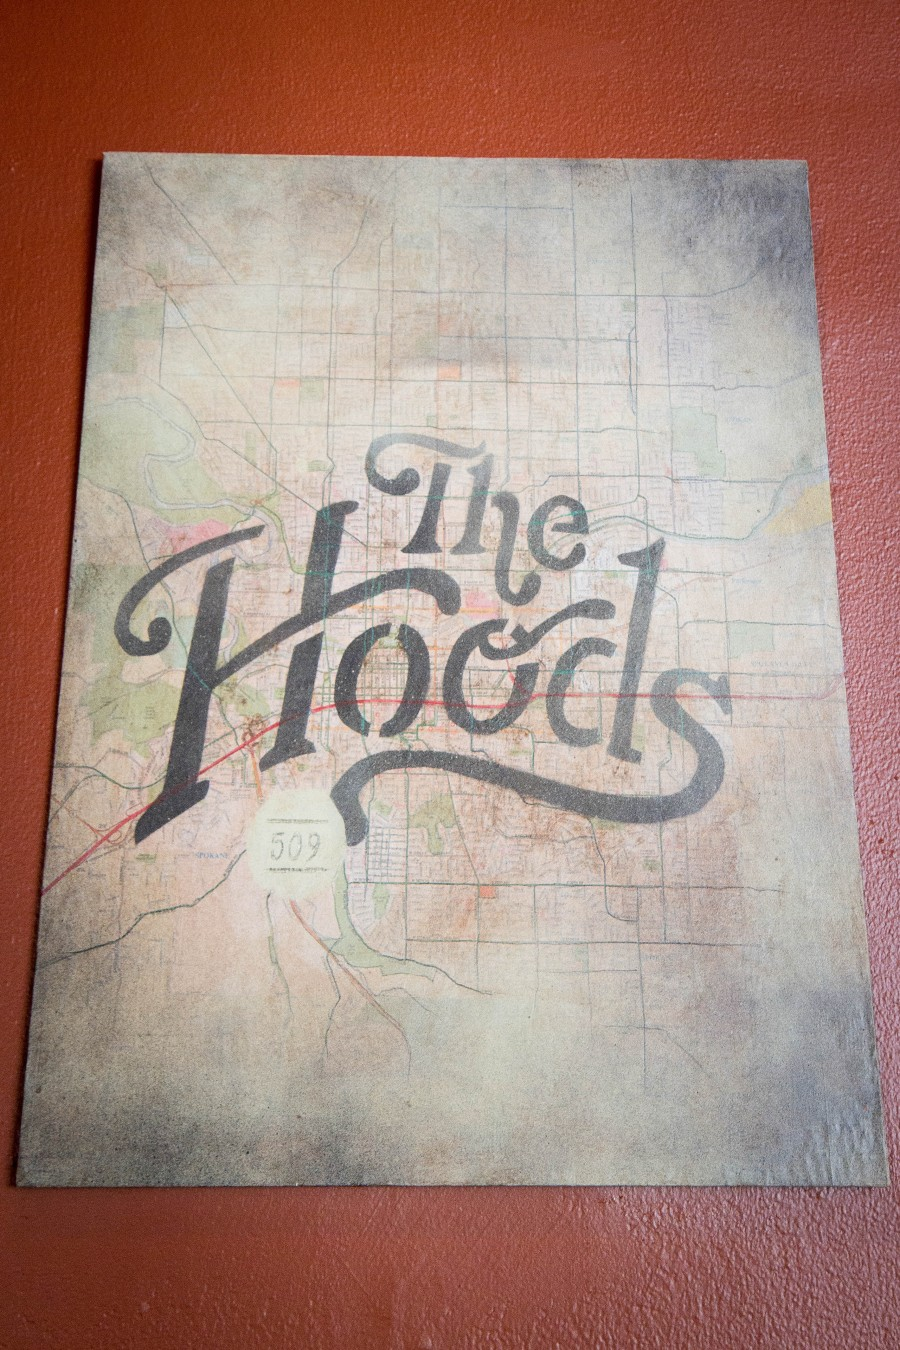 The Hoods Project